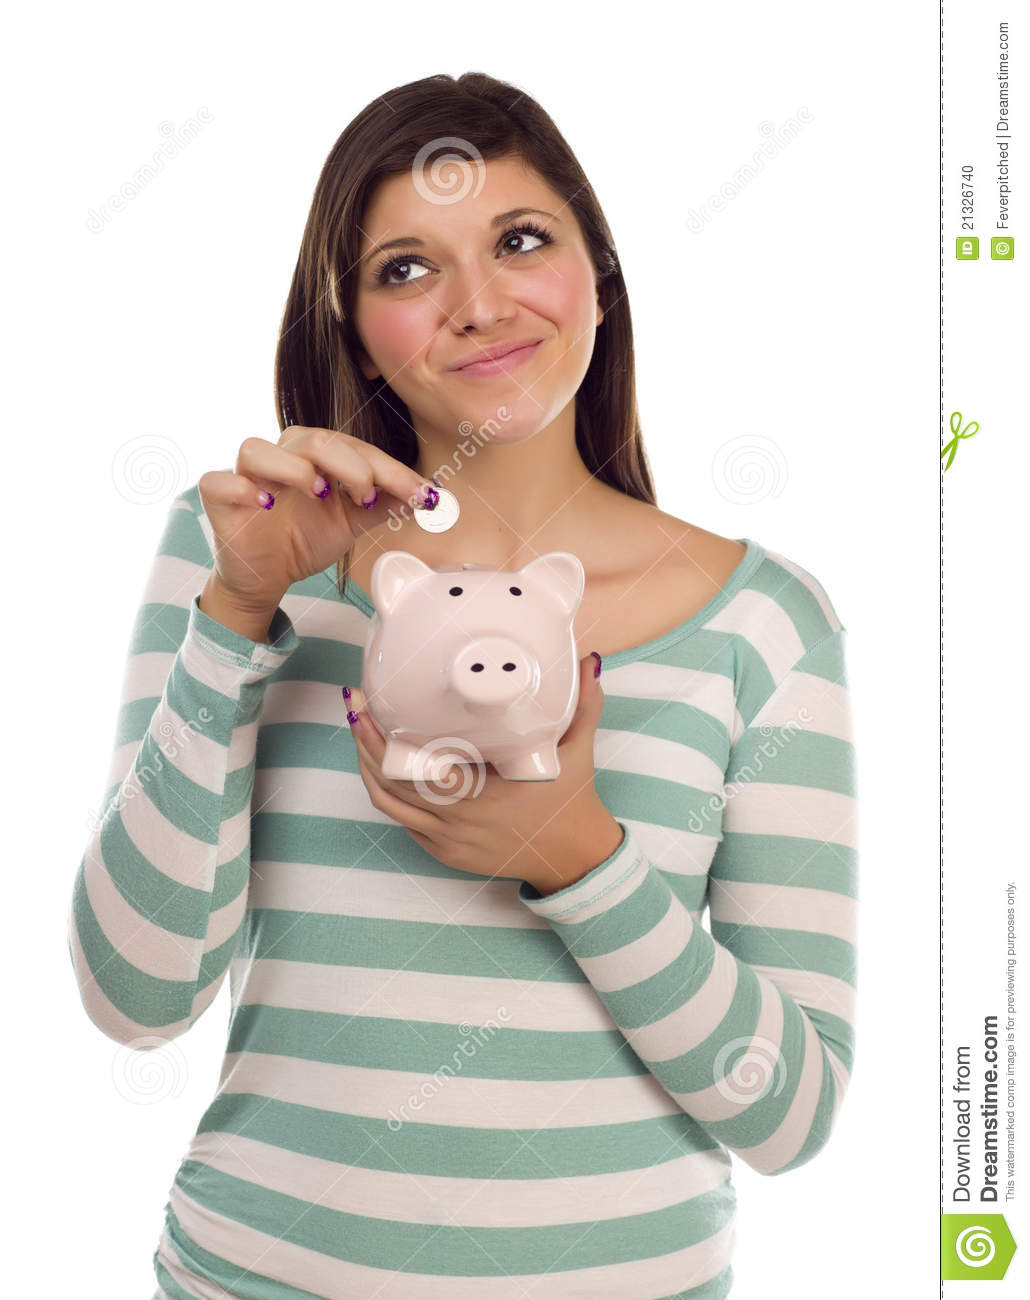 Ethnic Female Putting Coin Into Piggy Bank